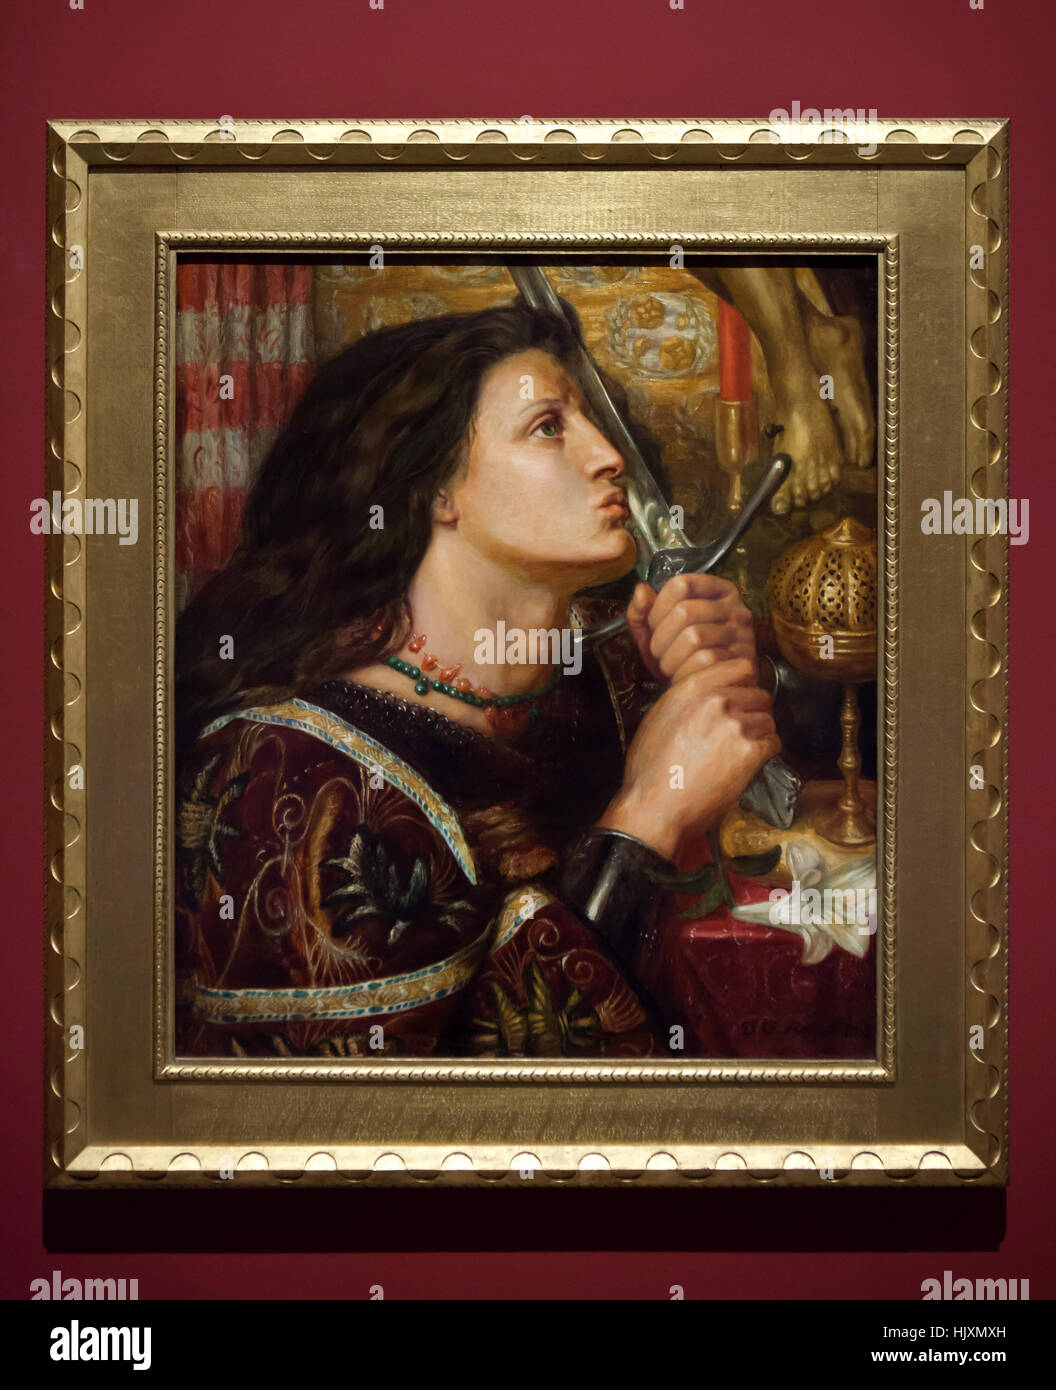 Painting Joan of Arc Kissing the Sword of Deliverance (1863) by English Pre-Raphaelite painter Dante Gabriel Rossetti Stock Photo